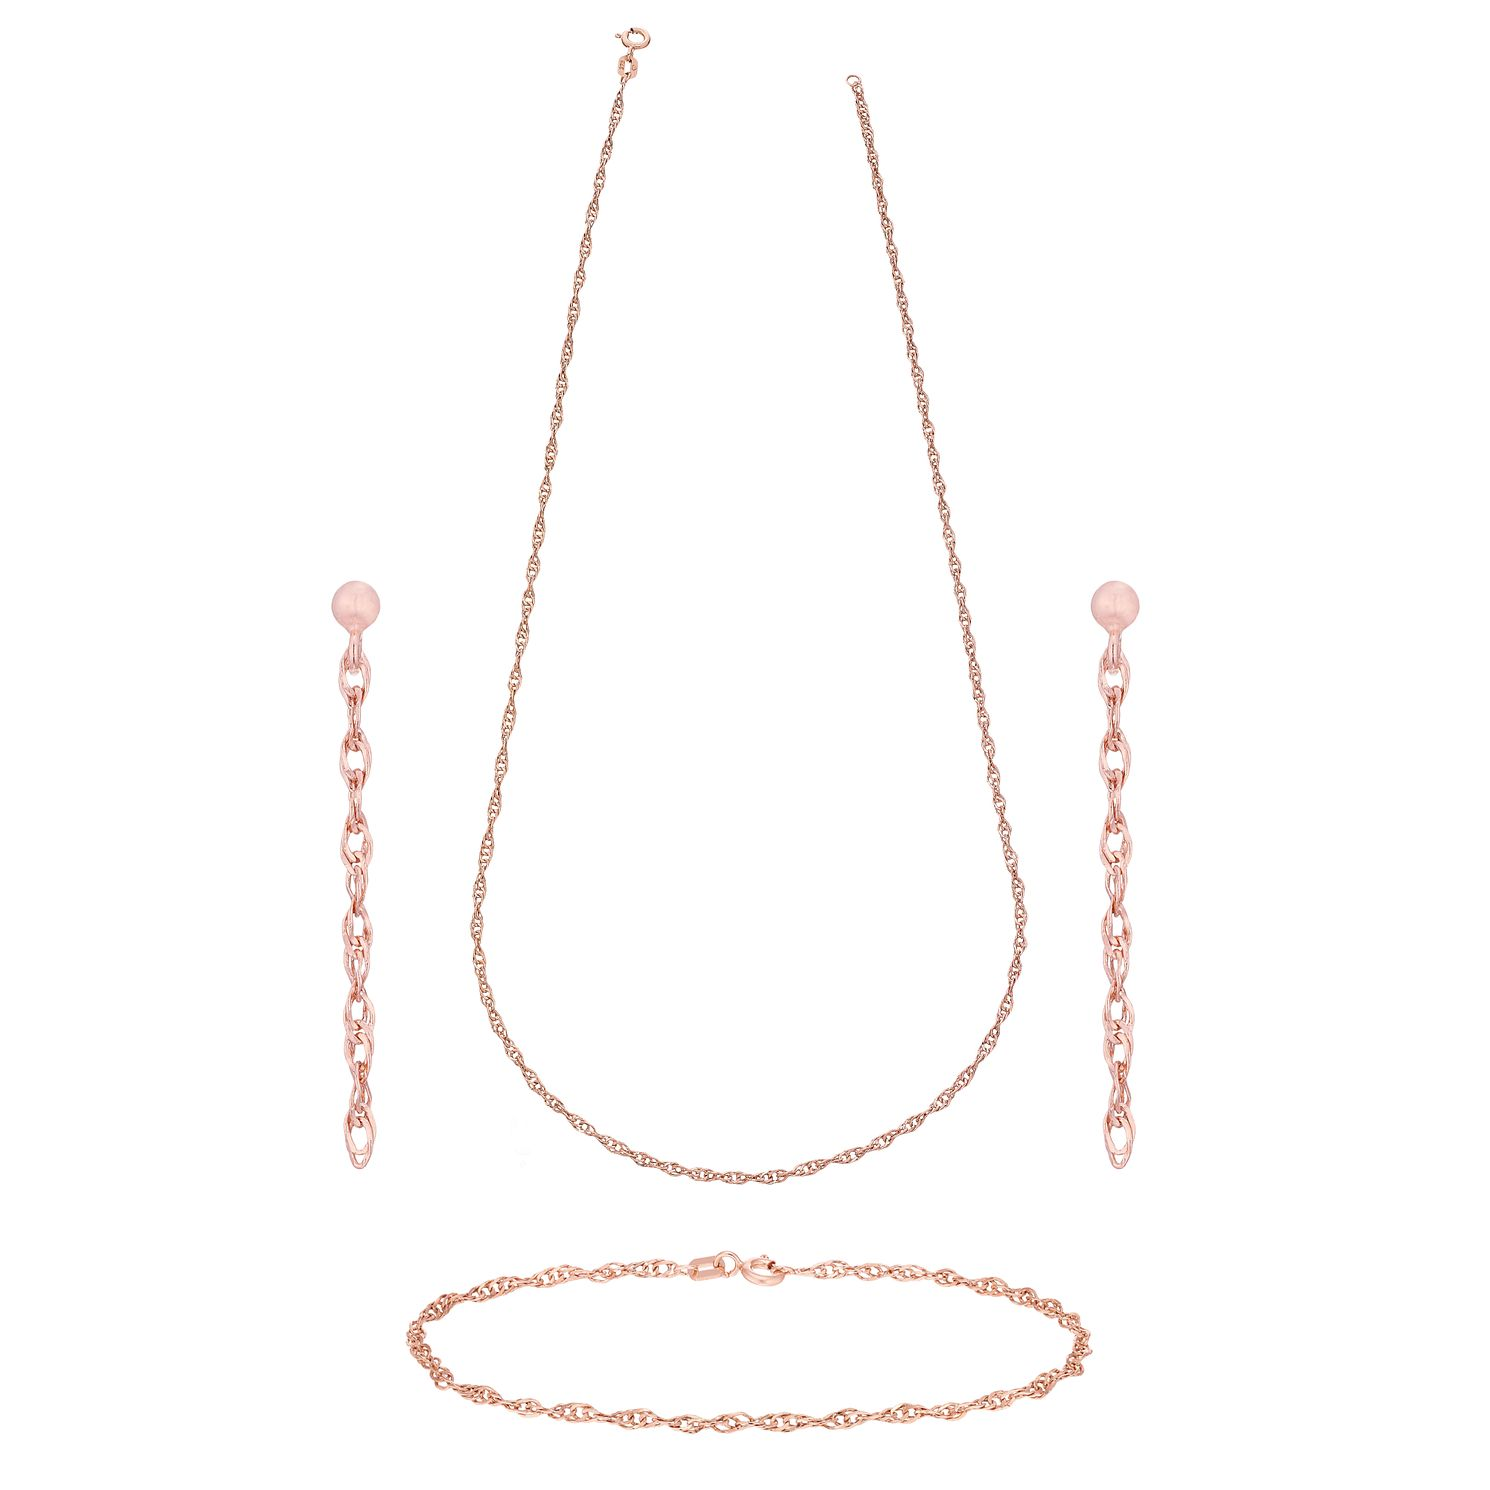 9ct Rose Gold Singapore Necklace, Bracelet & Drop Earrings - Product number 5142040